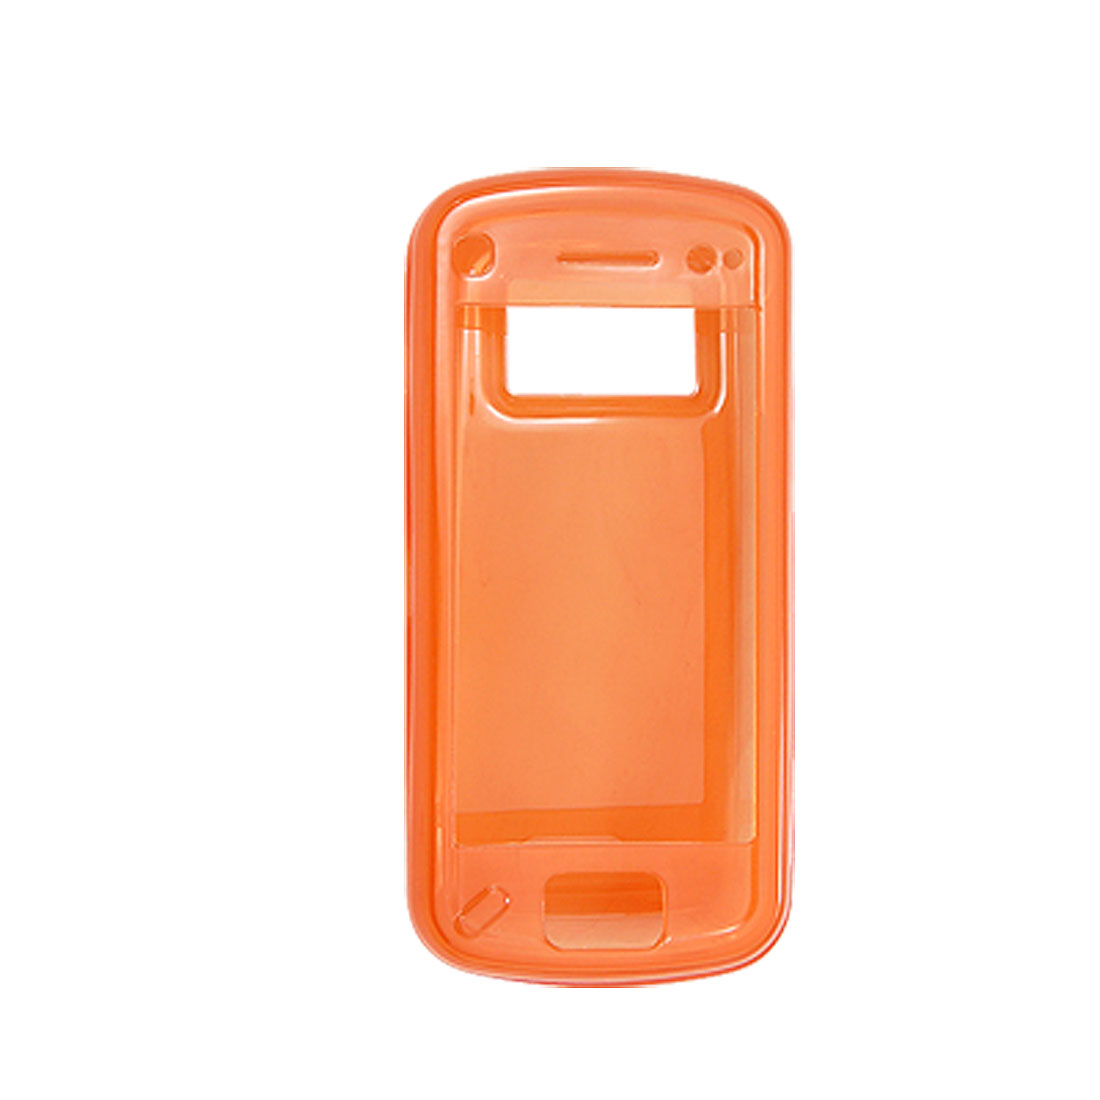 Soft Orange Shell Mobile Case Plastic Cover for Nokia N97